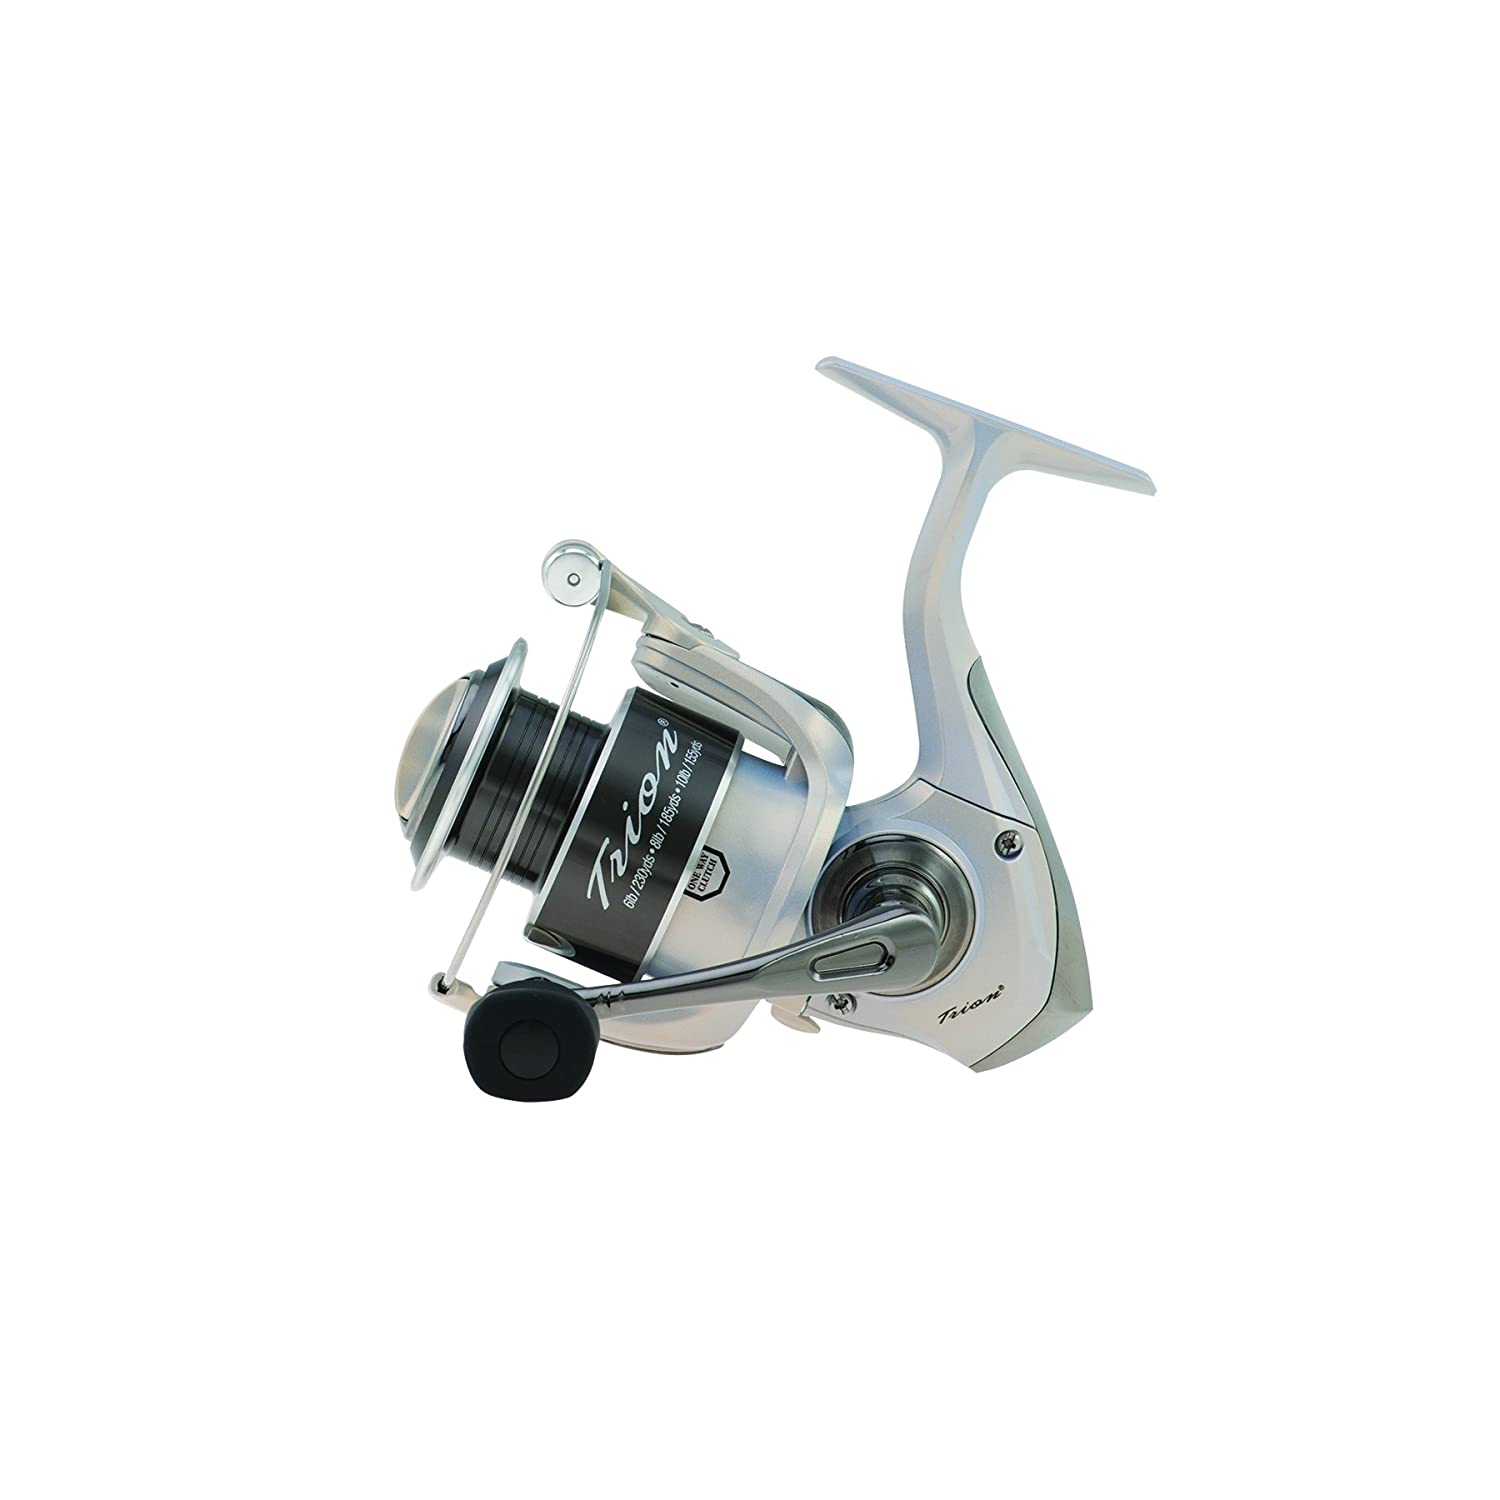 Pflueger Trion Spinning Fishing Reel All Models Sizes